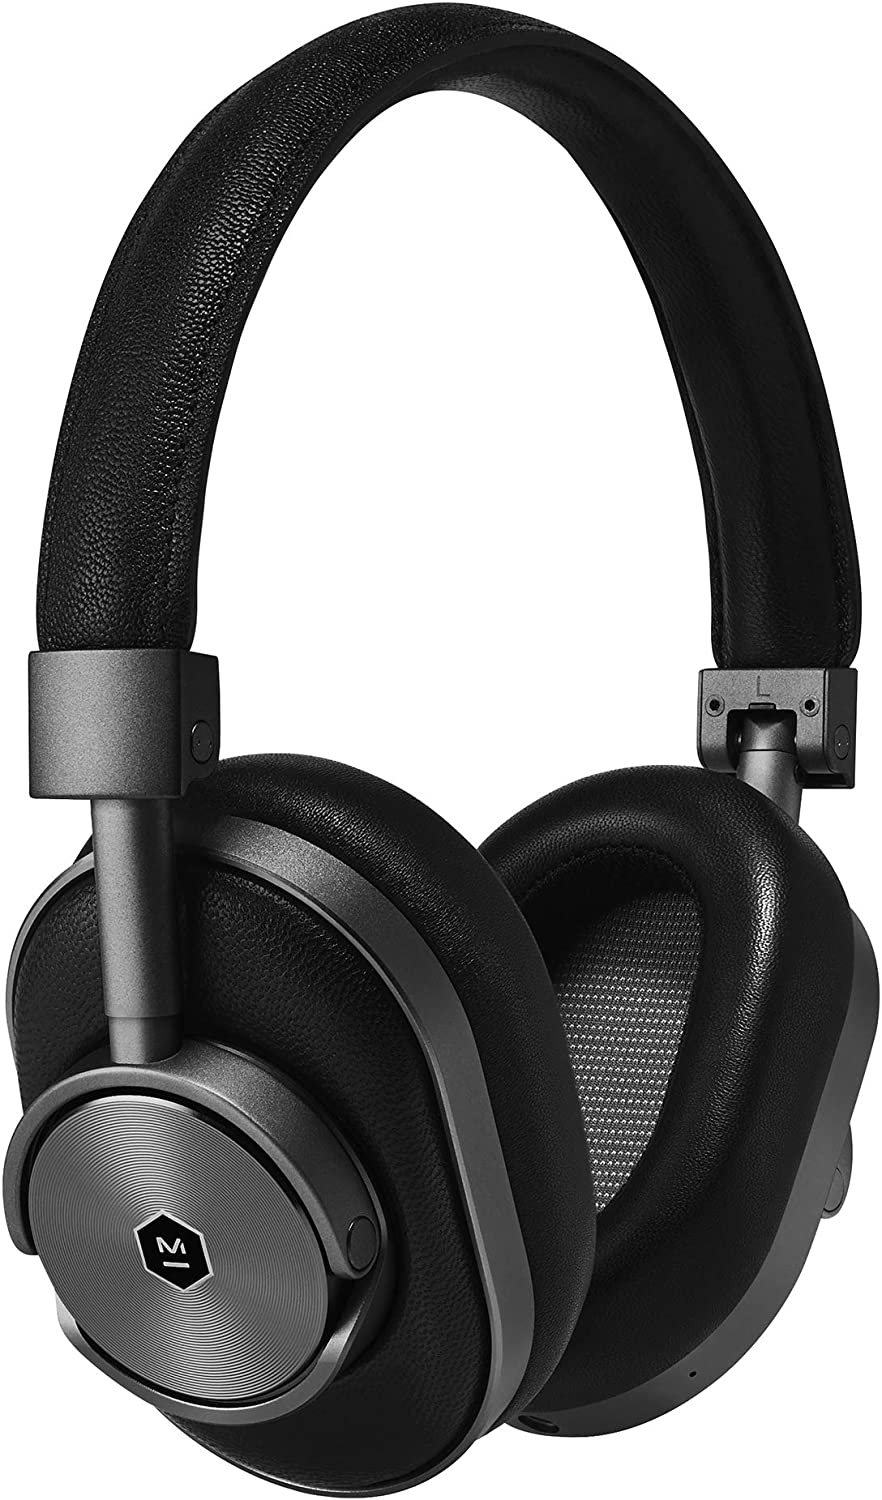 Master & Dynamic MW60 Wireless Bluetooth Foldable Headphones - Premium Over-The-Ear Headphones - Noise Isolating - Portable